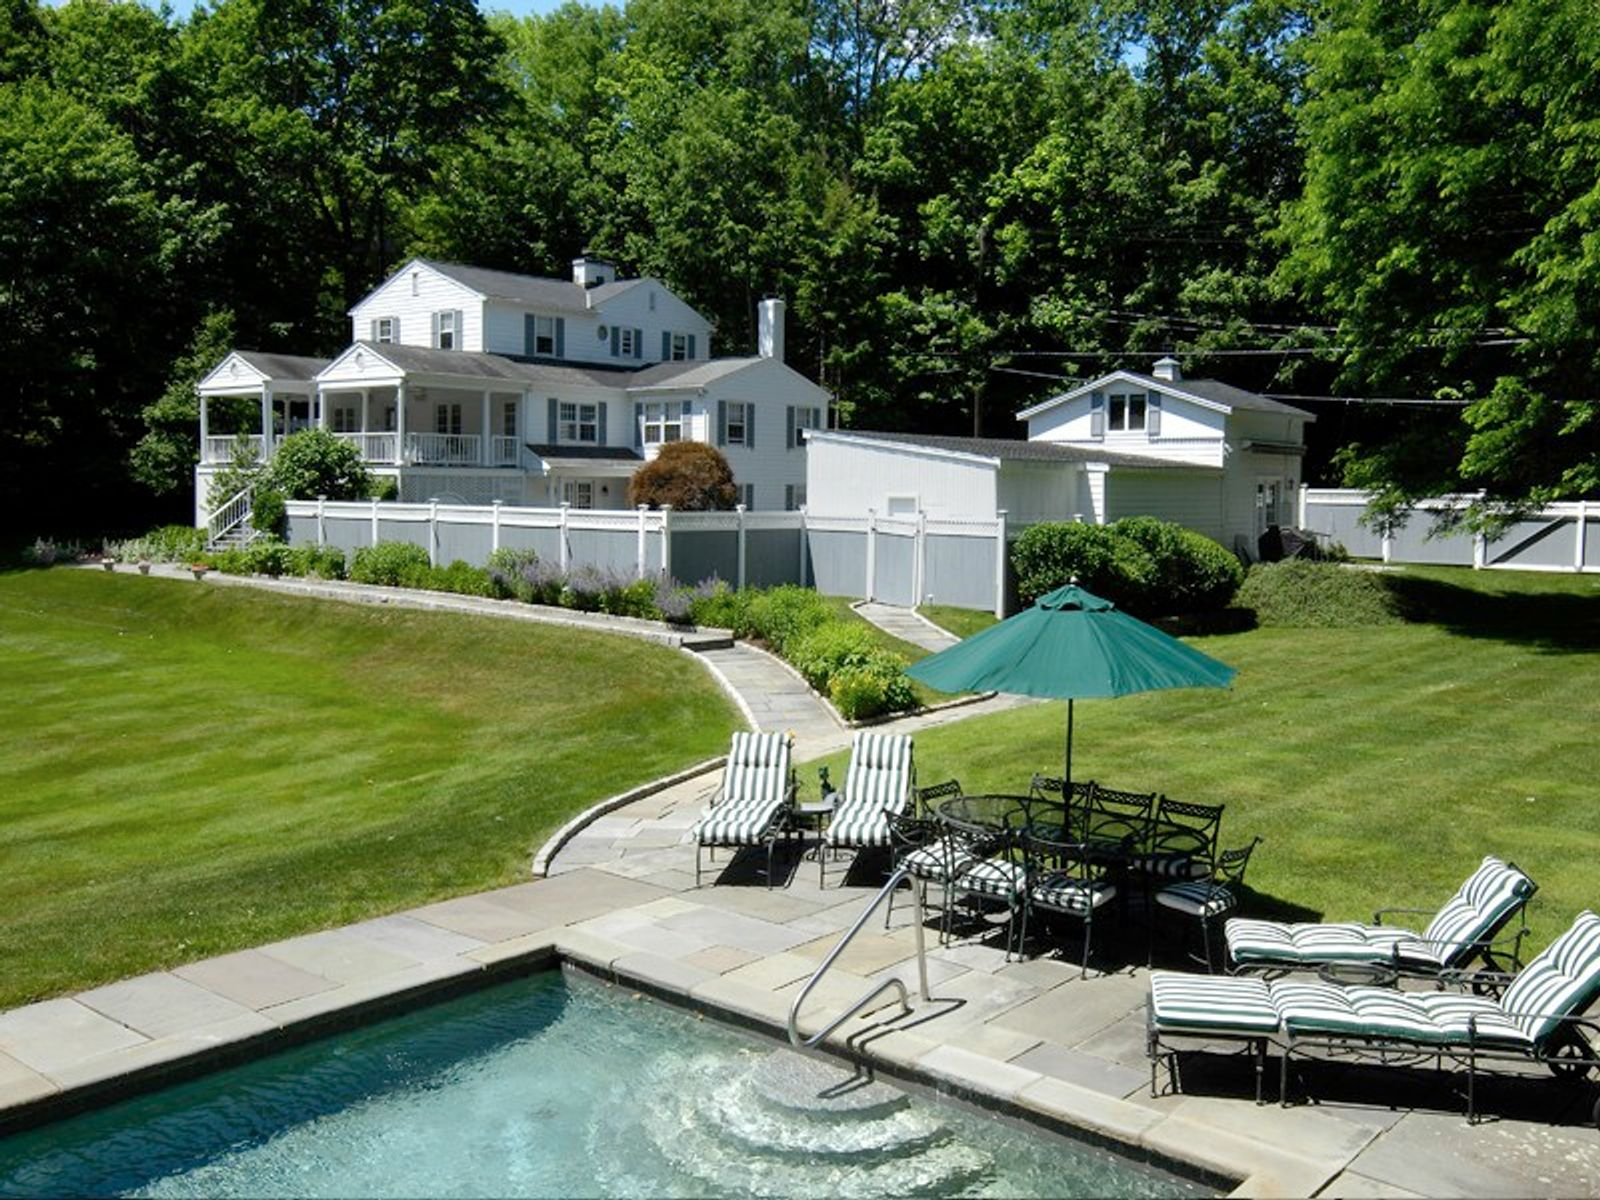 Beguiling Country House, Greenwich CT Single Family Home - Greenwich Real Estate